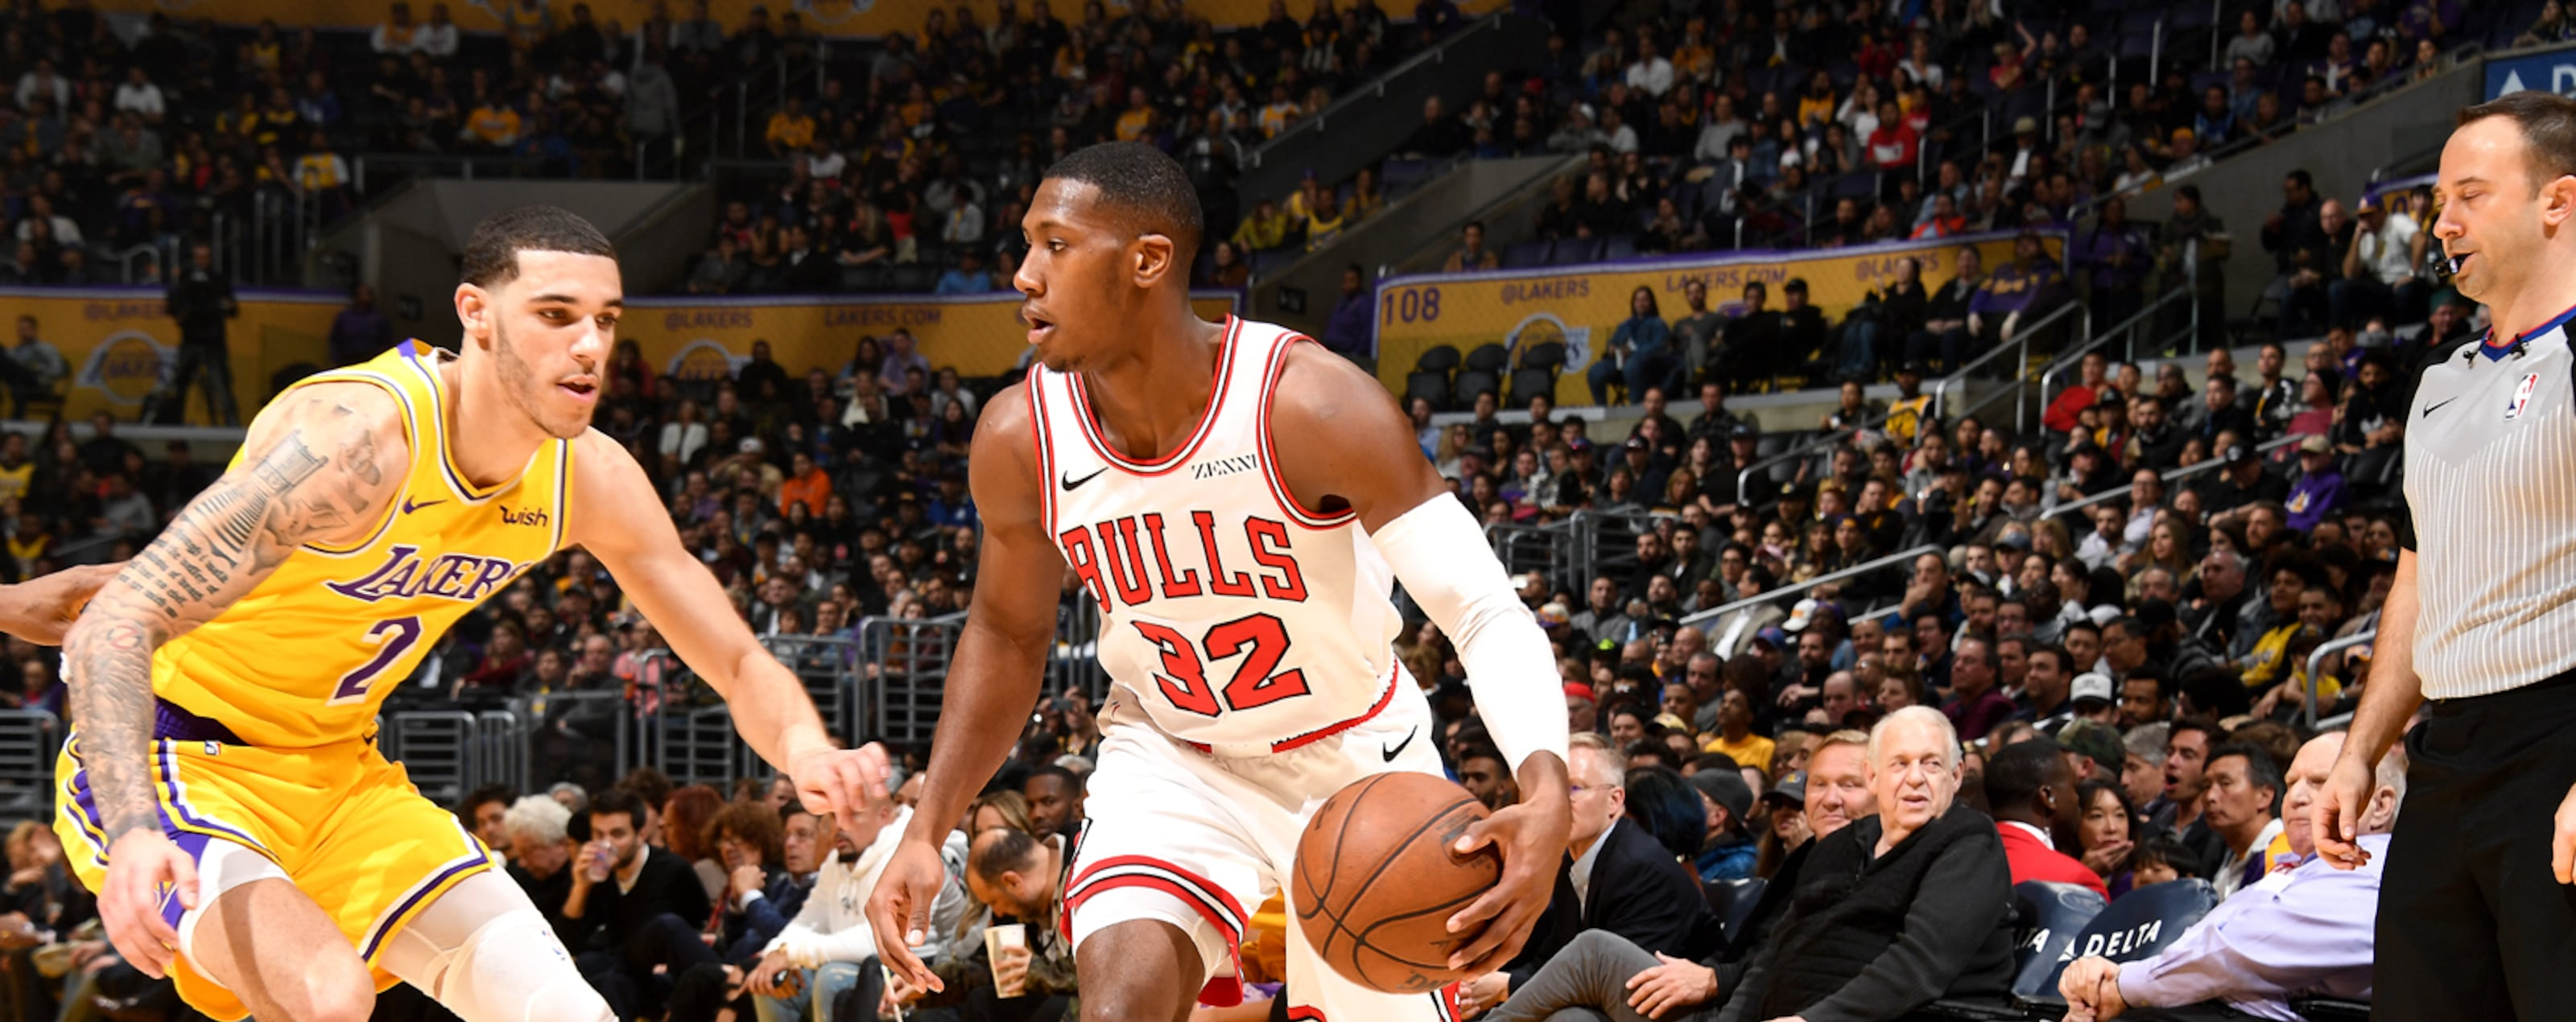 Kris Dunn dribbling during Los Angeles Lakers game.